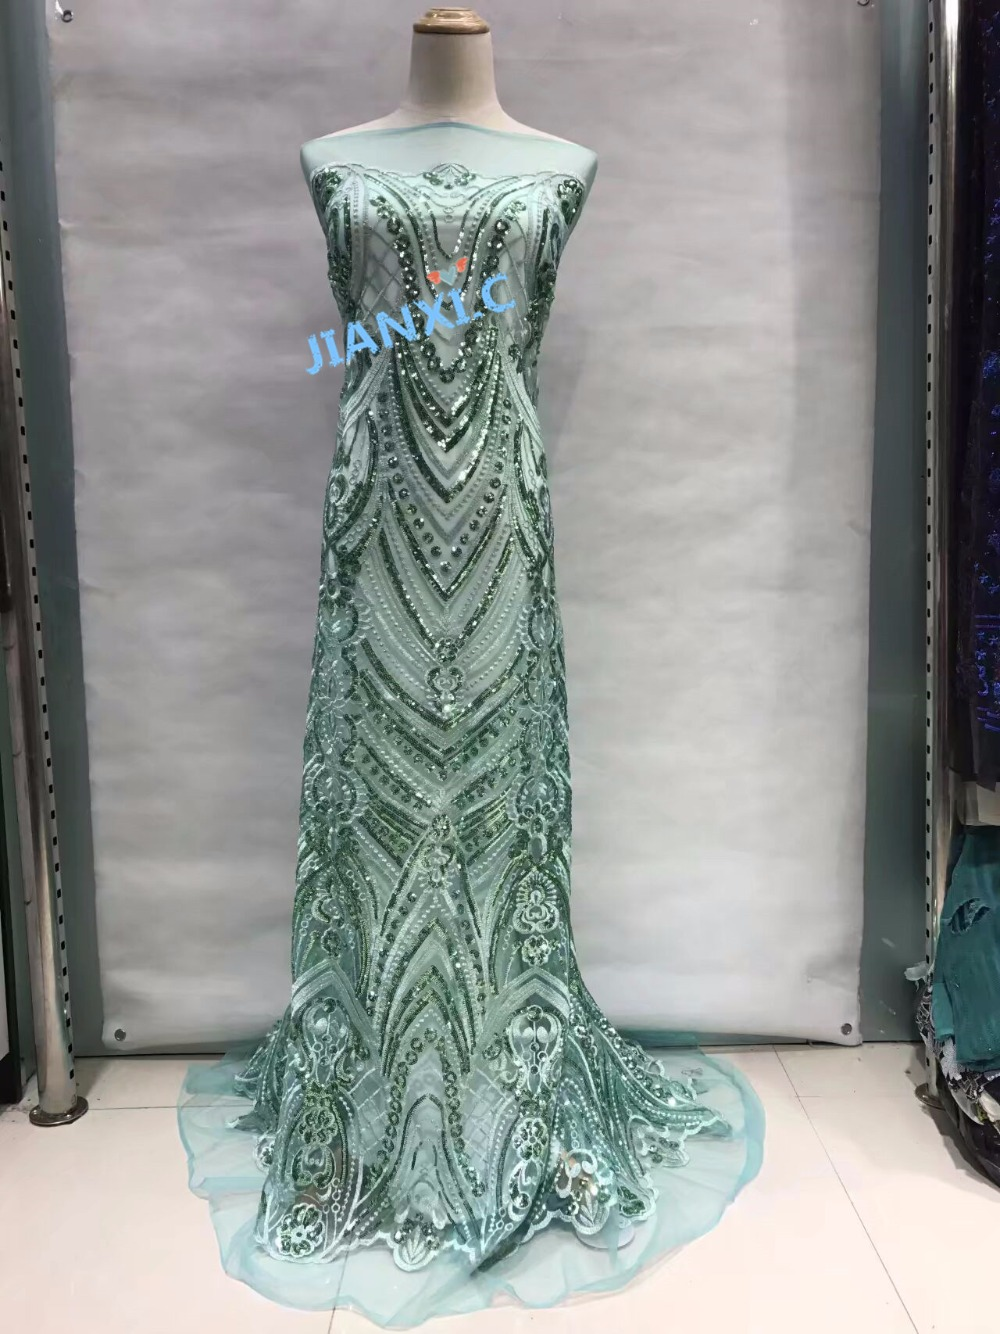 100 Polyester new design Embroidery Lace Fabrics sequins Mesh CiCi 112824 High quality for party dress